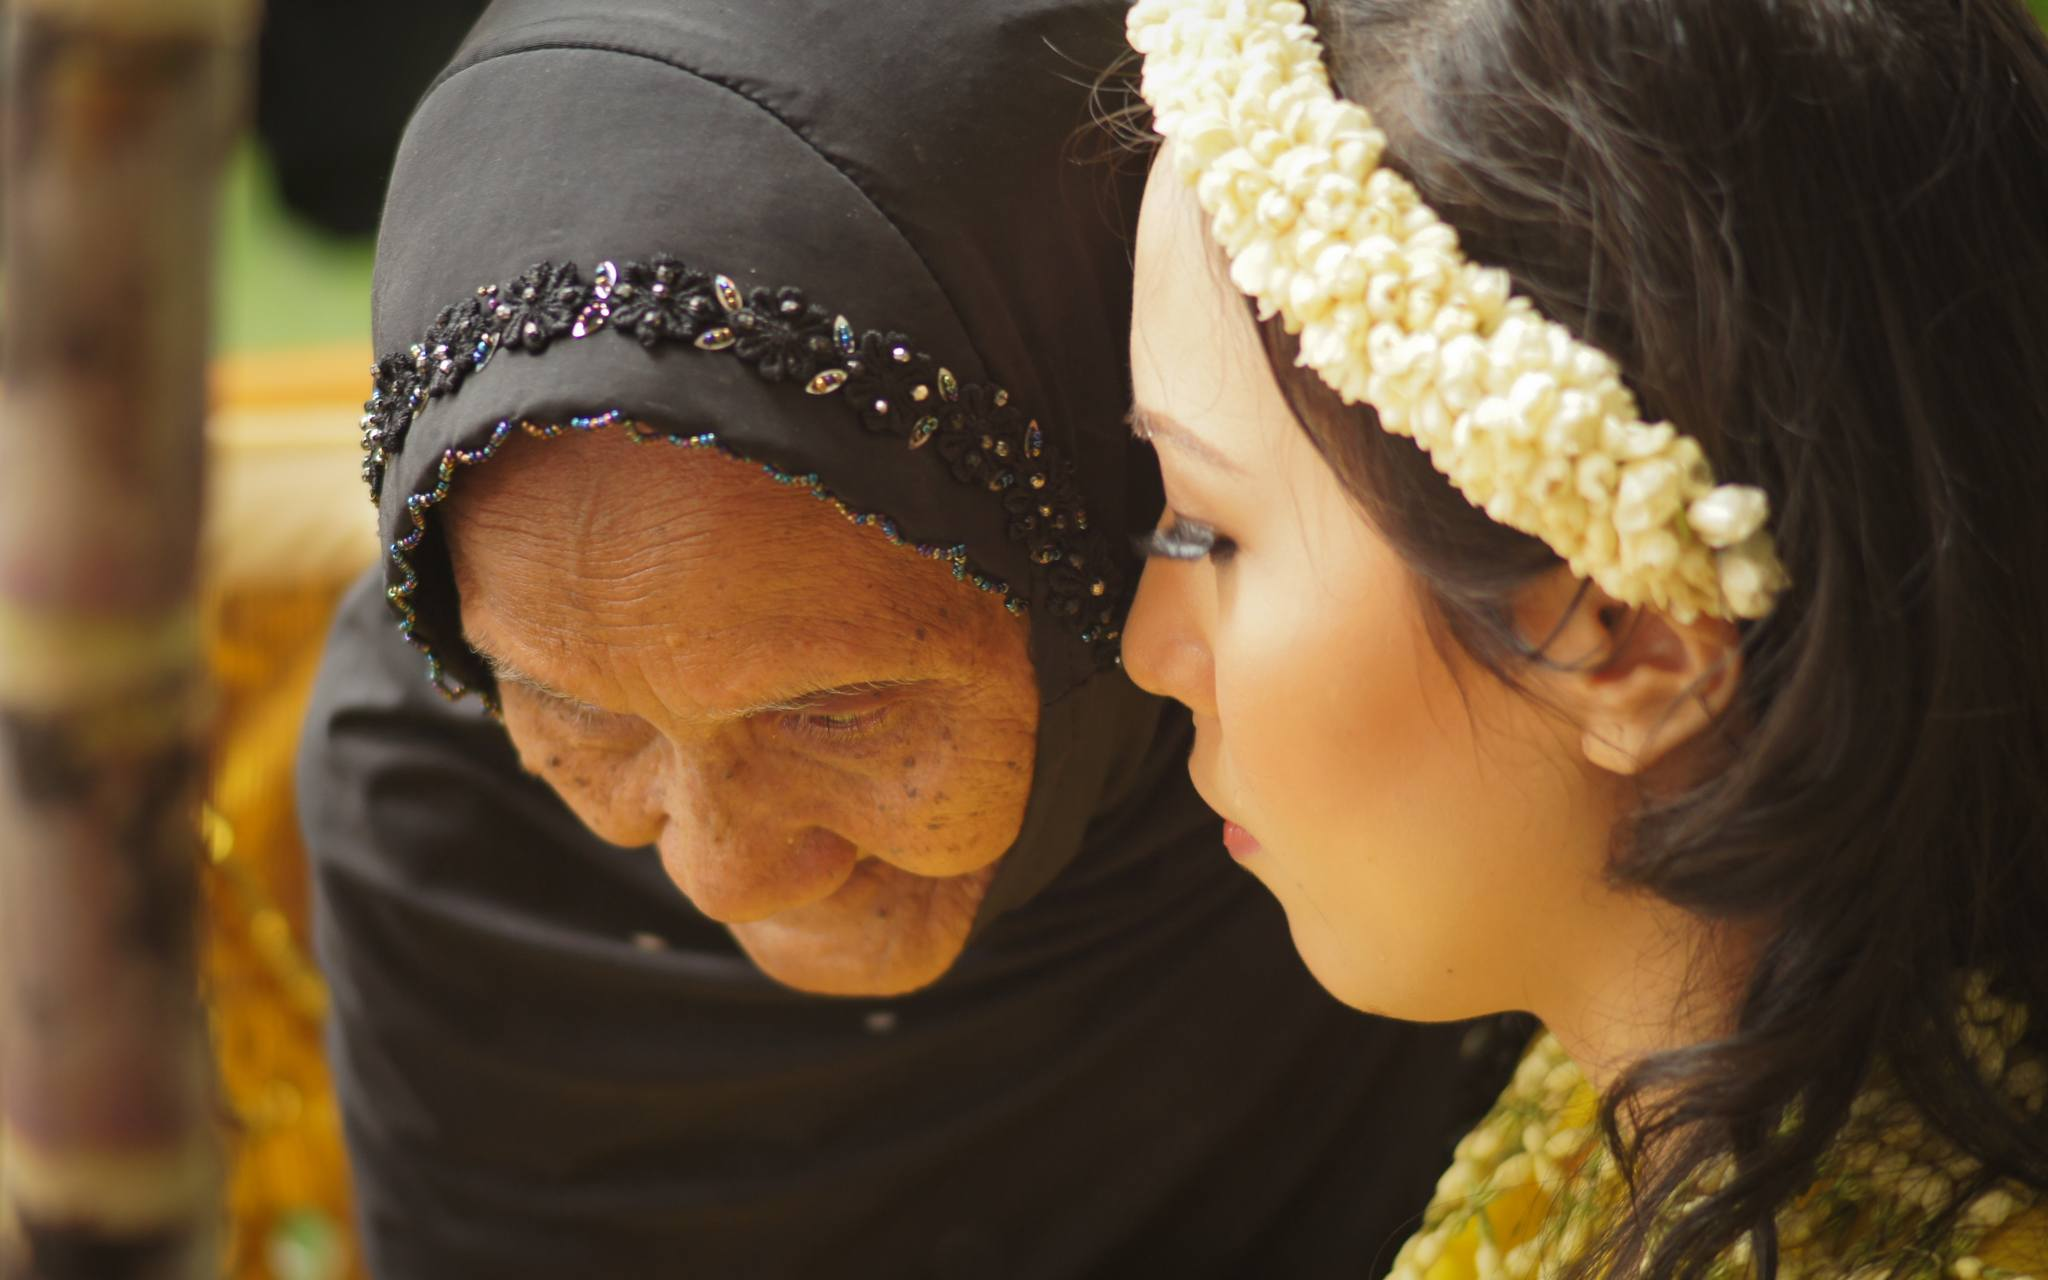 The bride-to-be is blessed by a shaman who was present to ensure a smooth spiritual transition into married life.